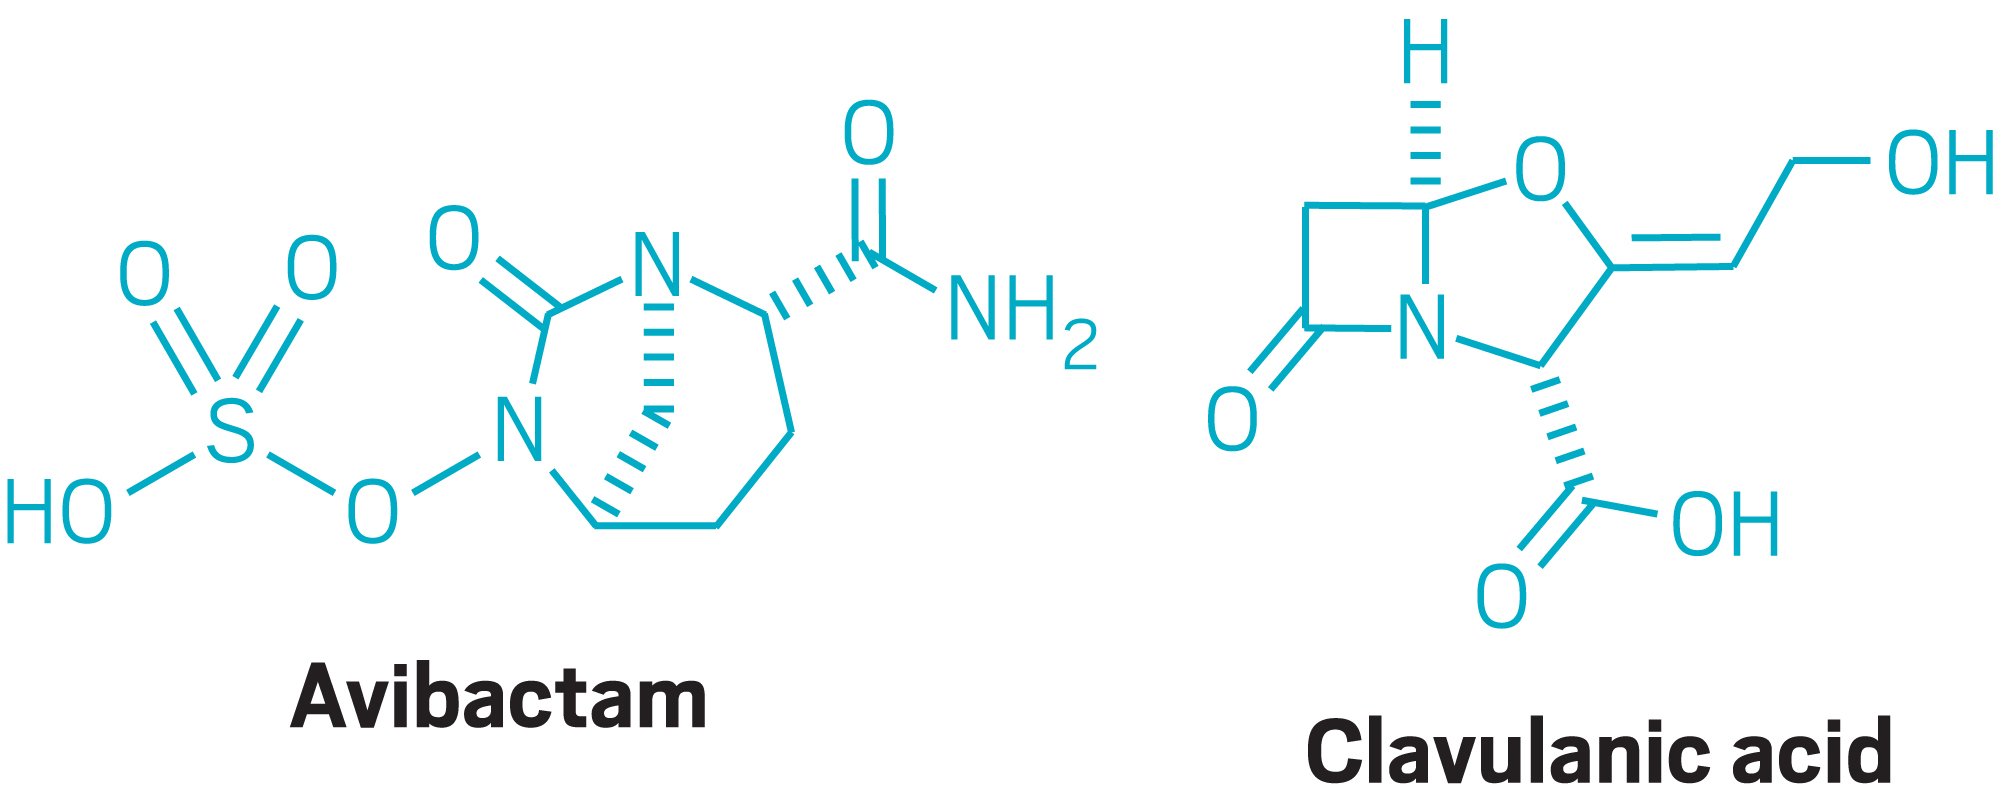 The hunt for new antibiotics grows harder as resistance builds